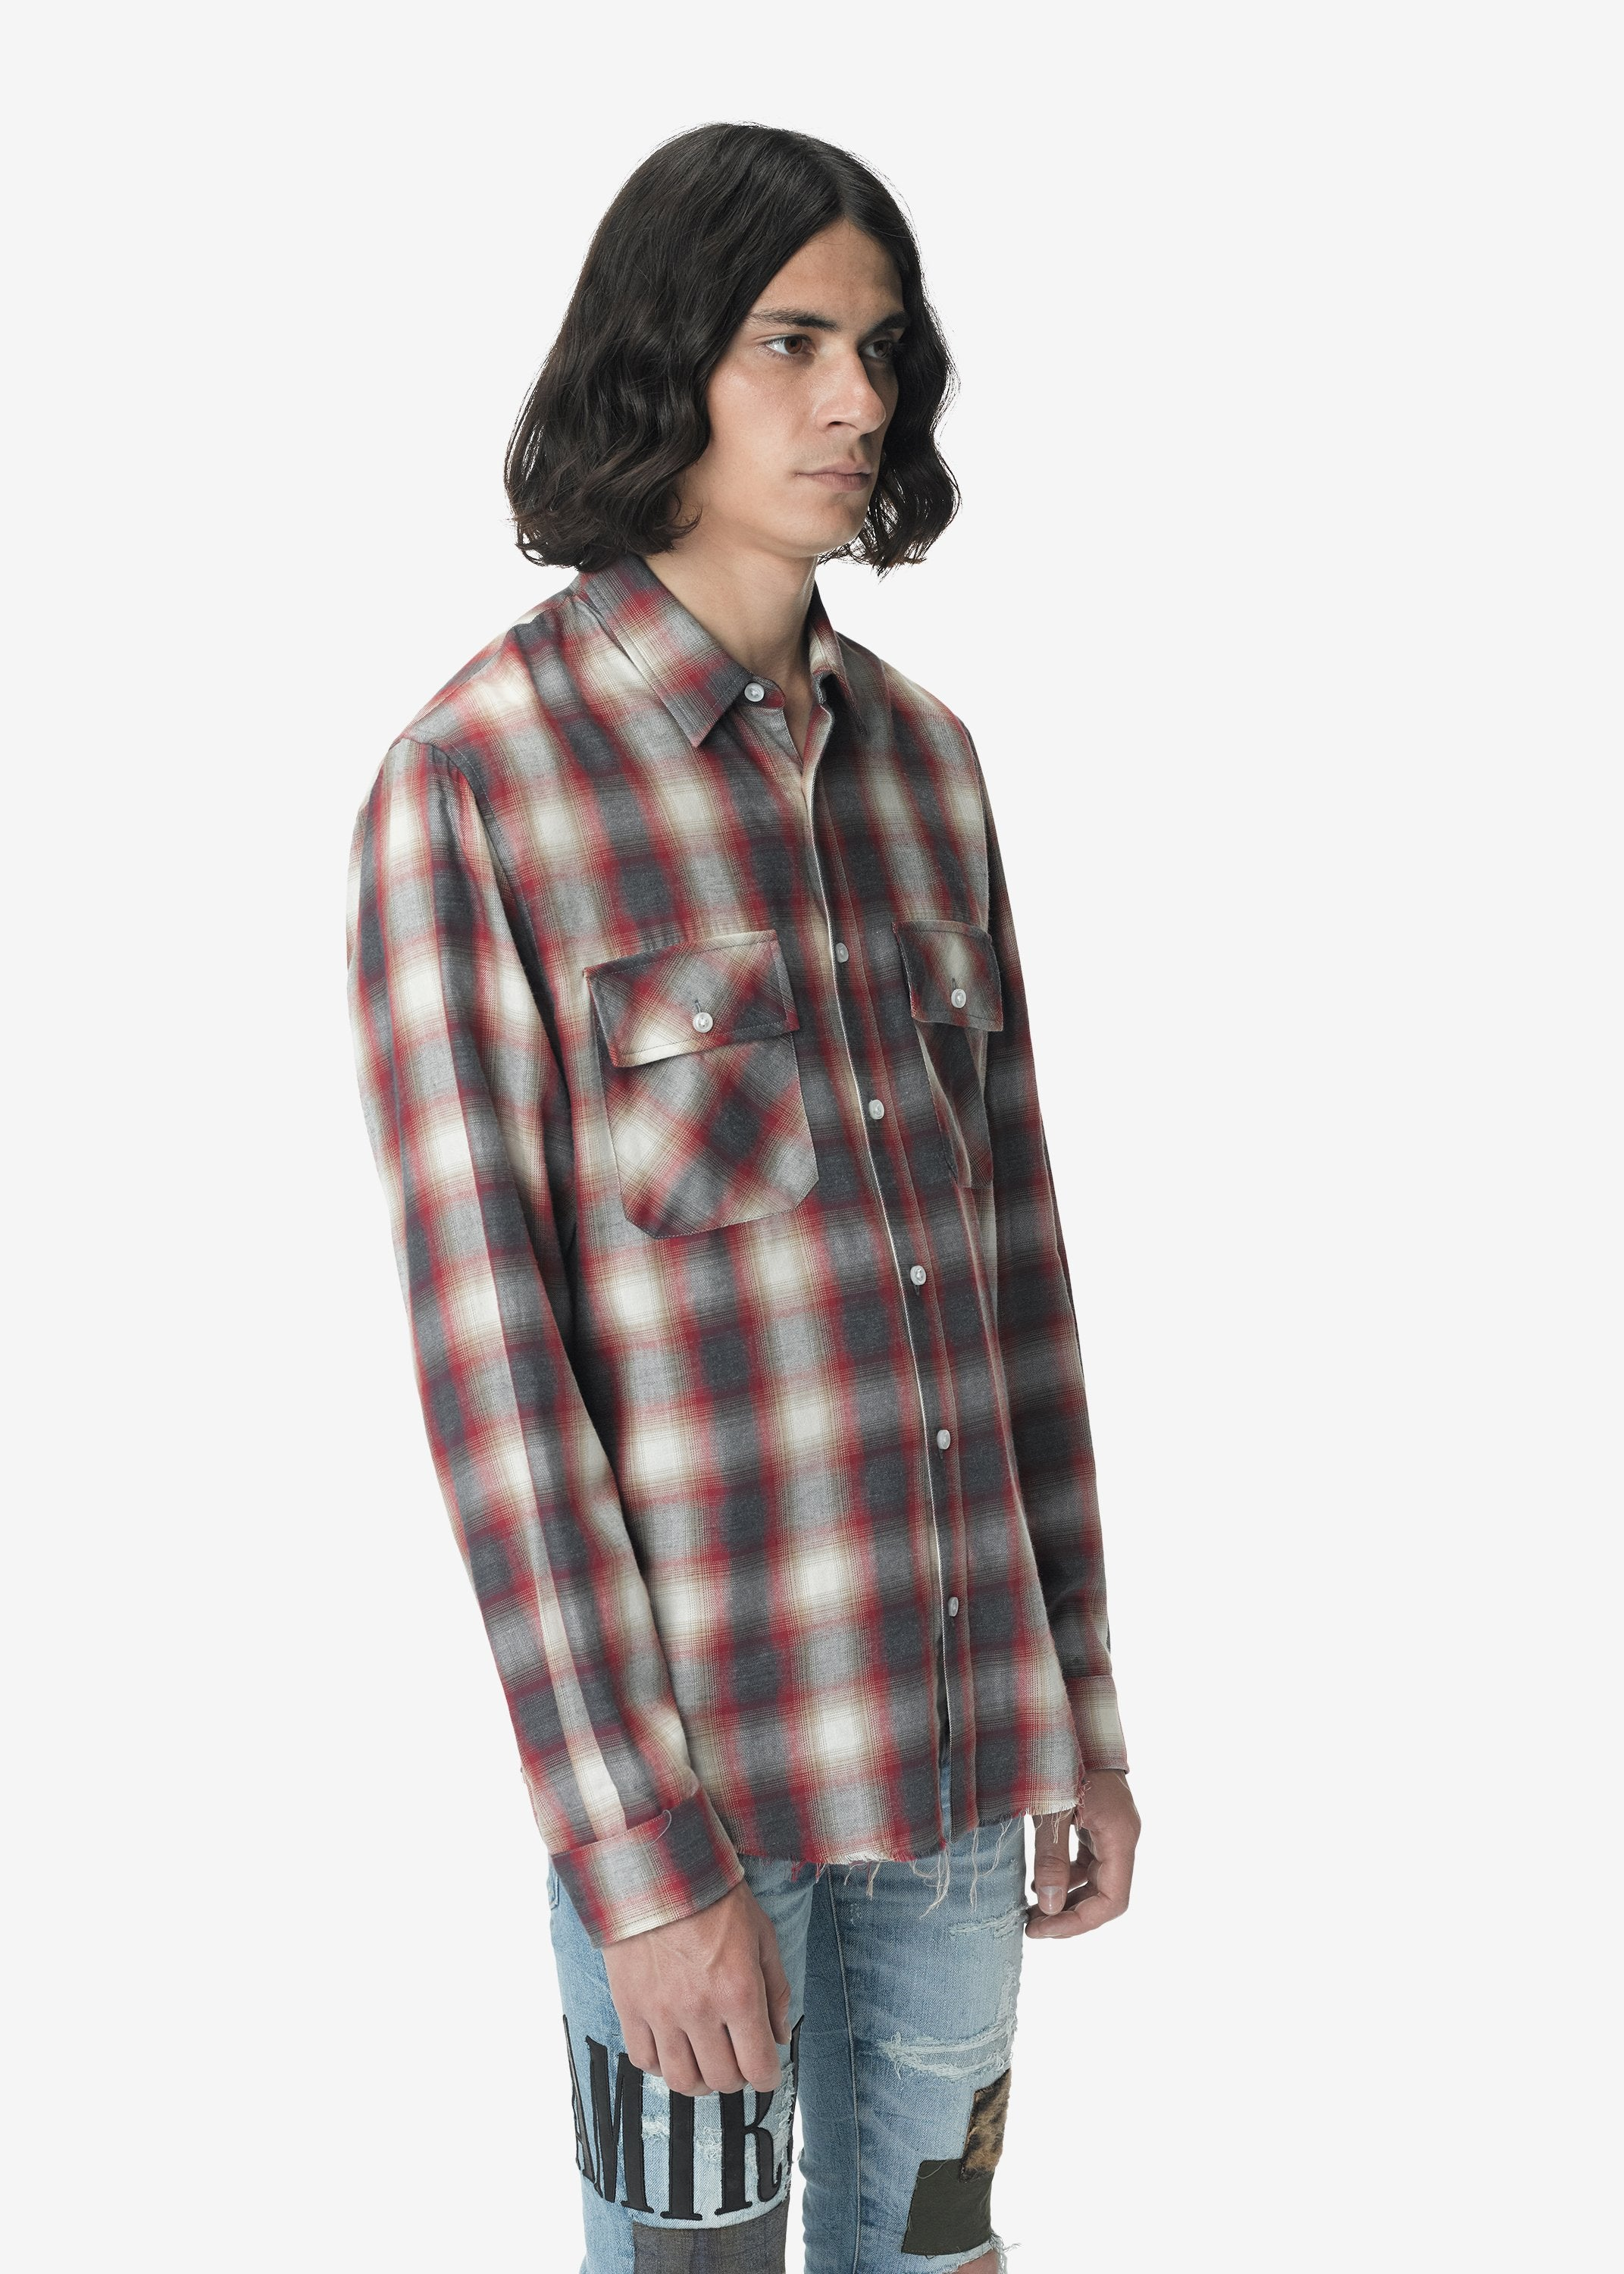 amiri-flannel-shirt-red-white-image-4